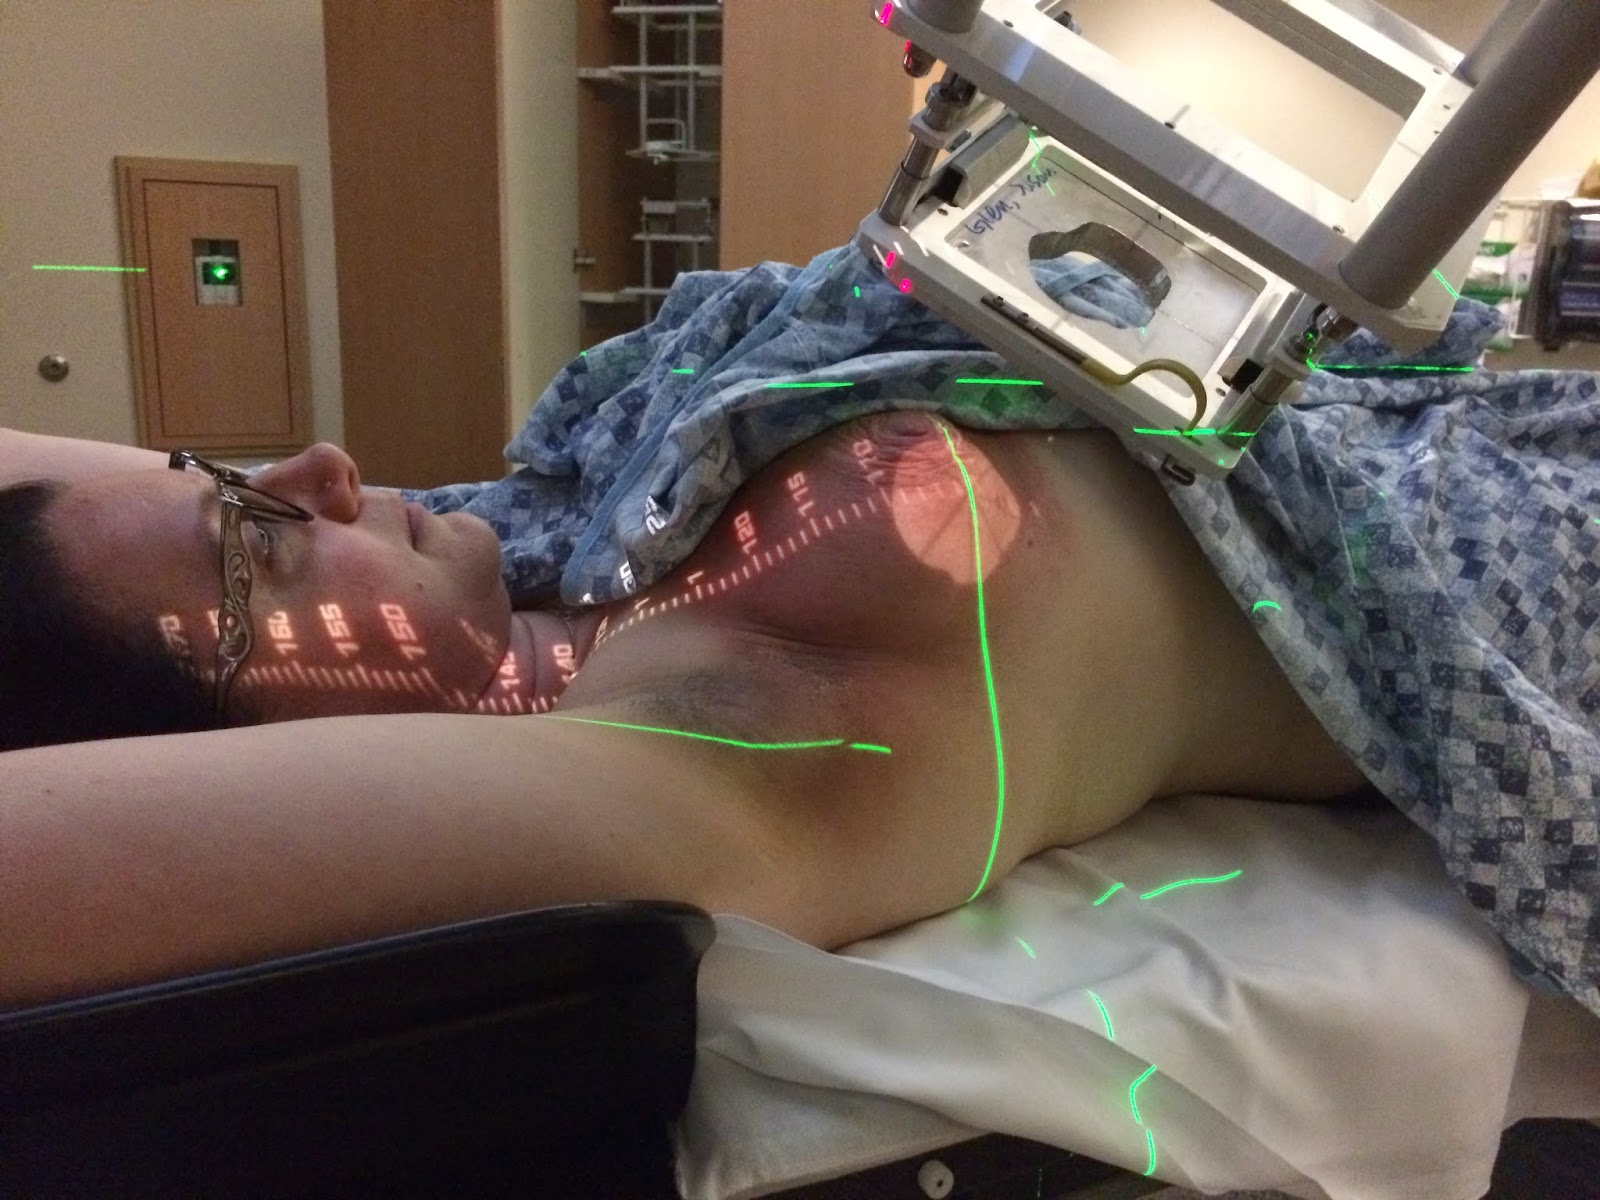 Photon Torpedo Attachment Thing To The Radiation Eye They Added The Cut Out Plate Designed To Mimic The Shape And Position Of My Lumpectomy Bedand